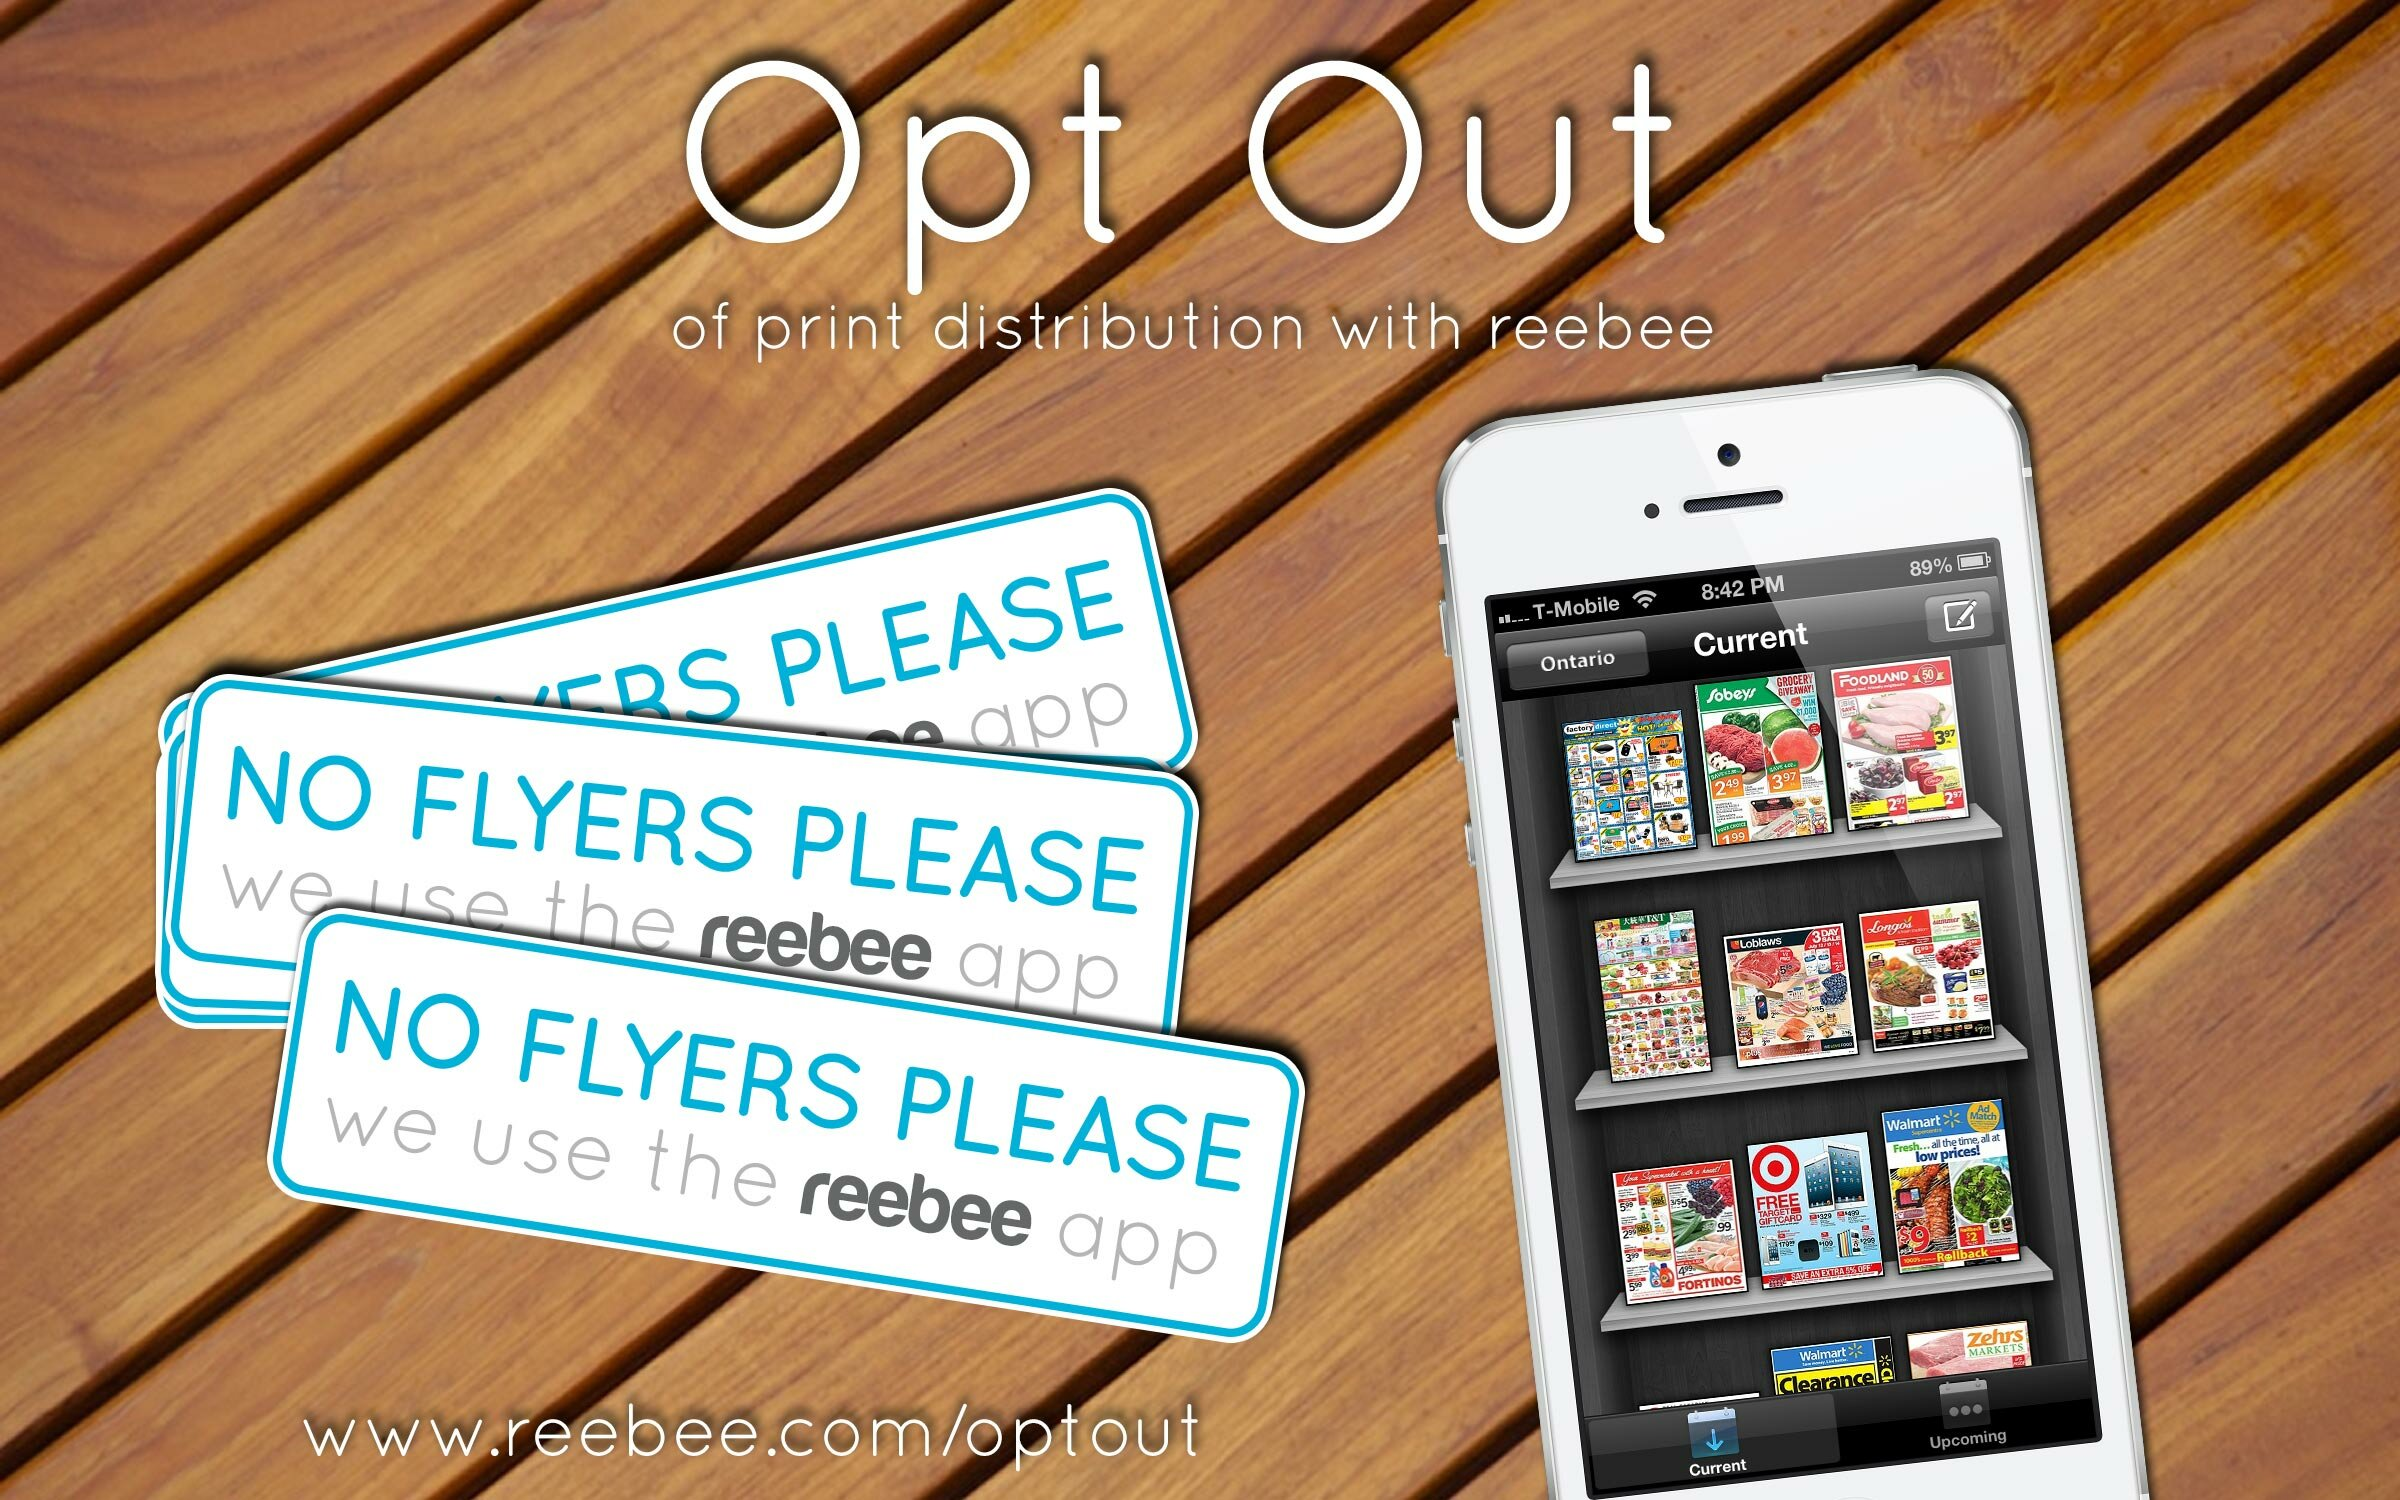 Flyer apps and online flyers on your phone – Would you opt out of hard copy flyers?